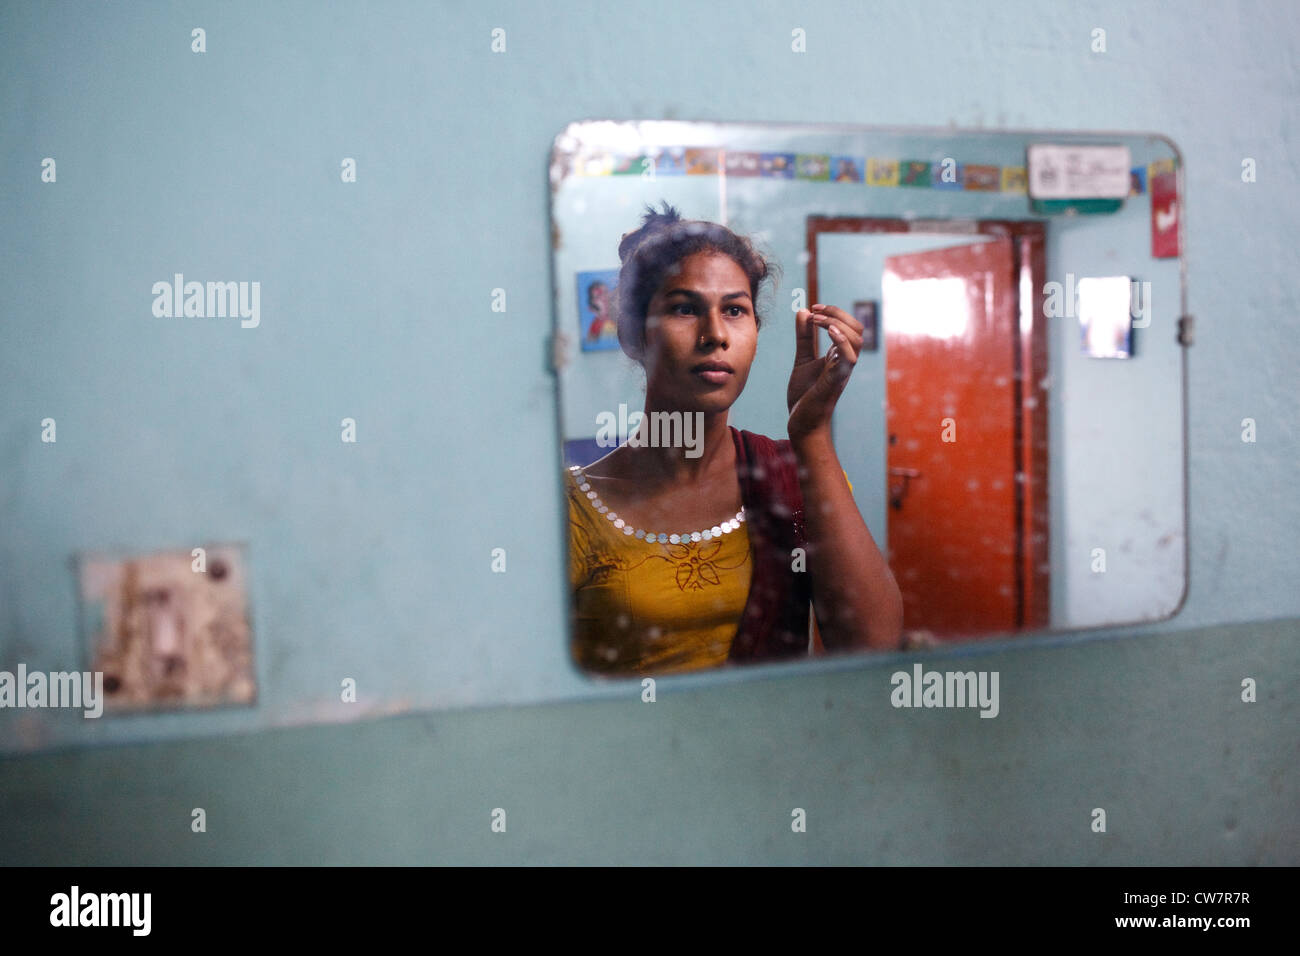 A portrait of a transgender person (hijra) in Chittagong, Bangladesh. -  Stock